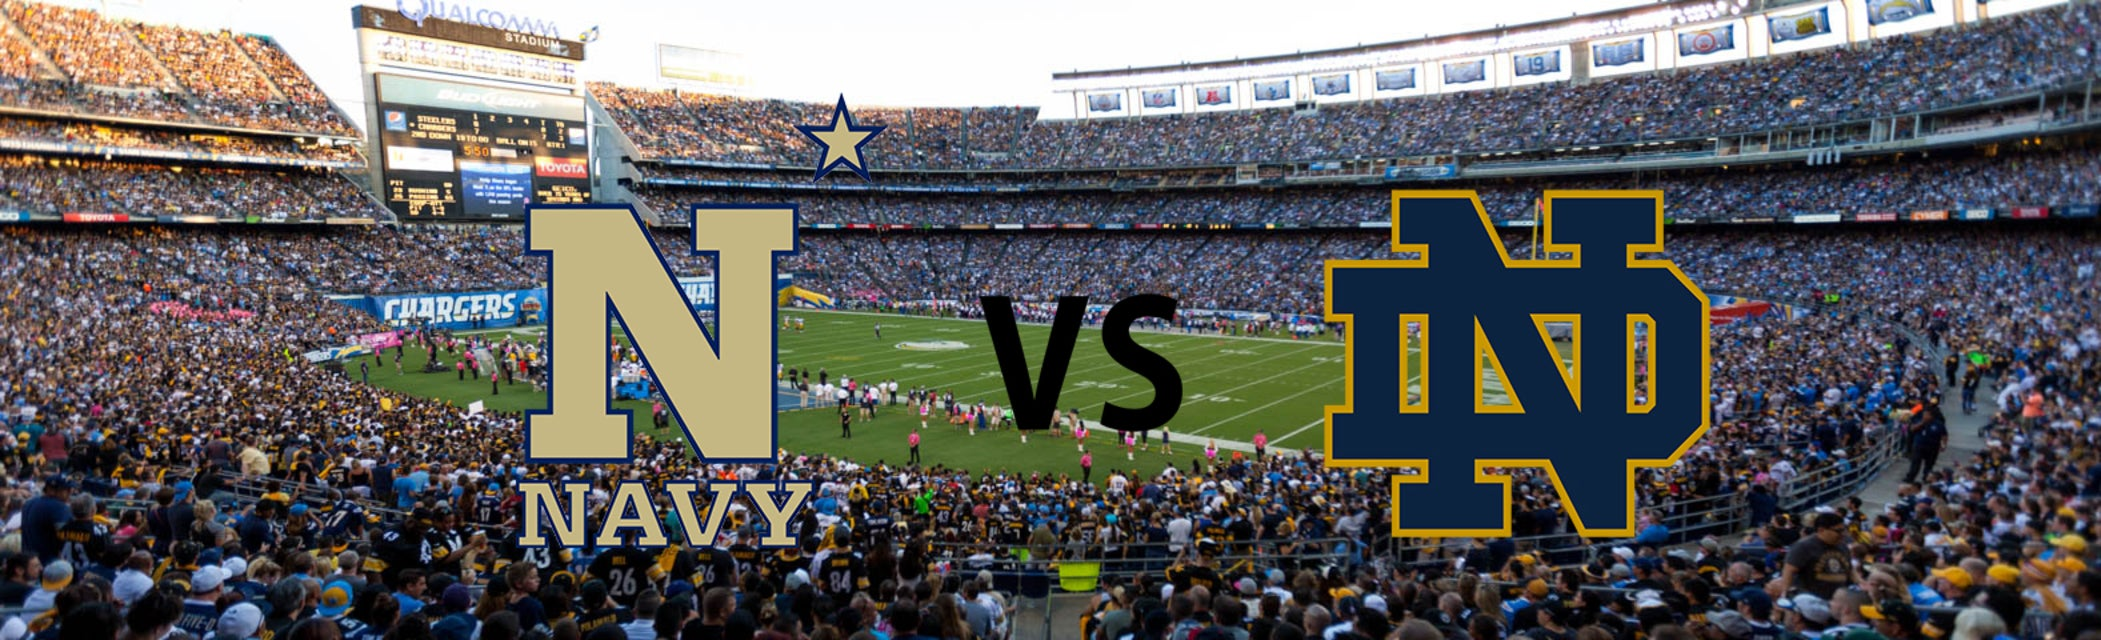 NAVY vs Notre Dame Tickets